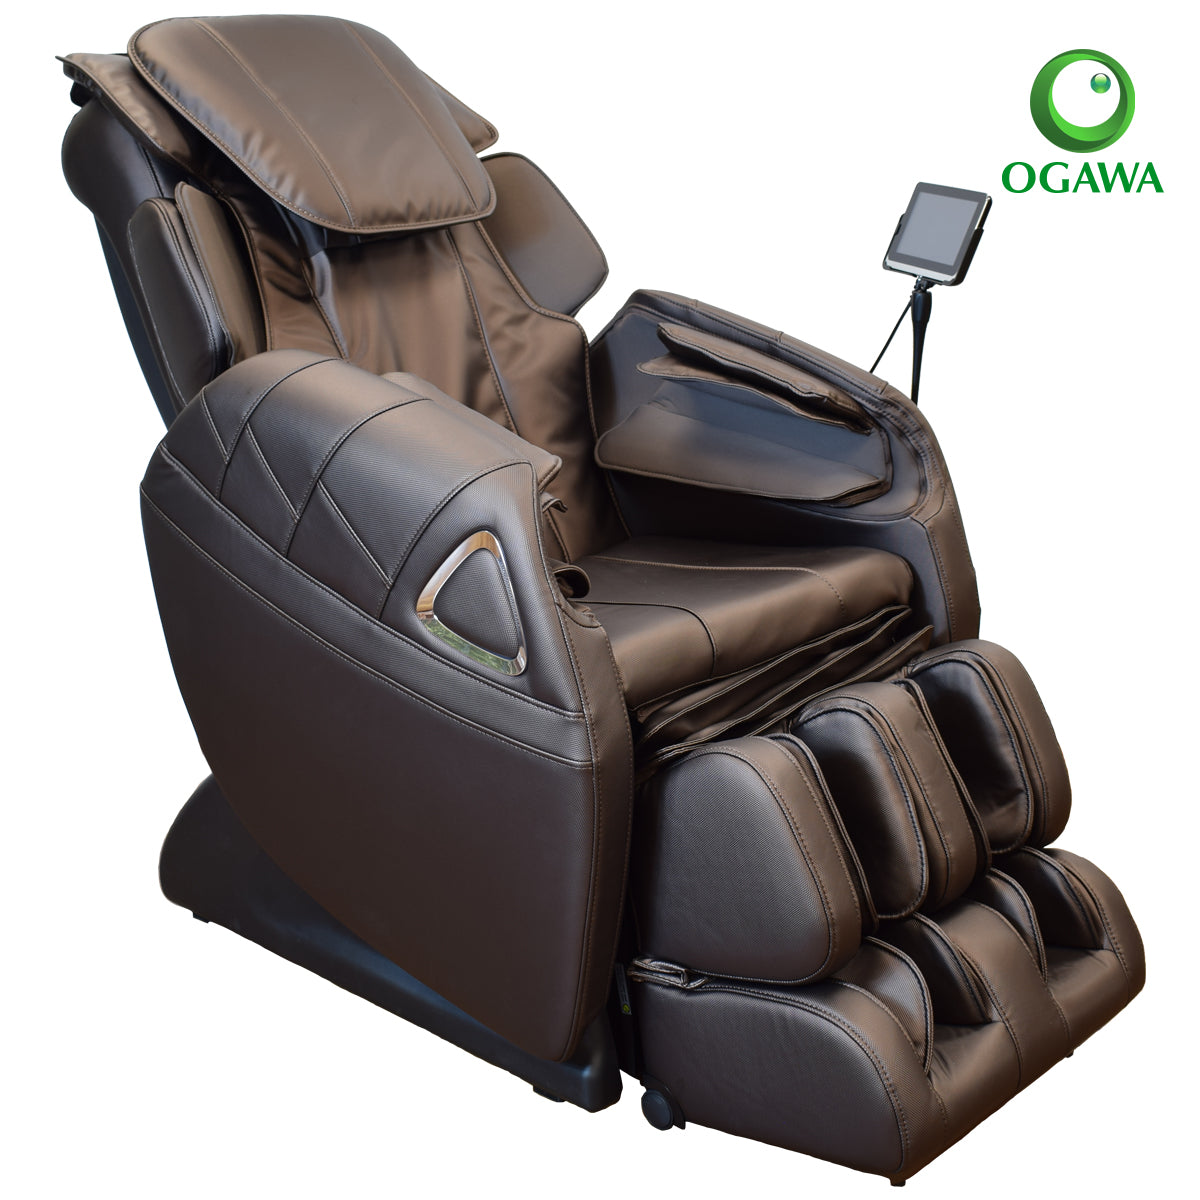 Ogawa Refresh Plus Massage Chair